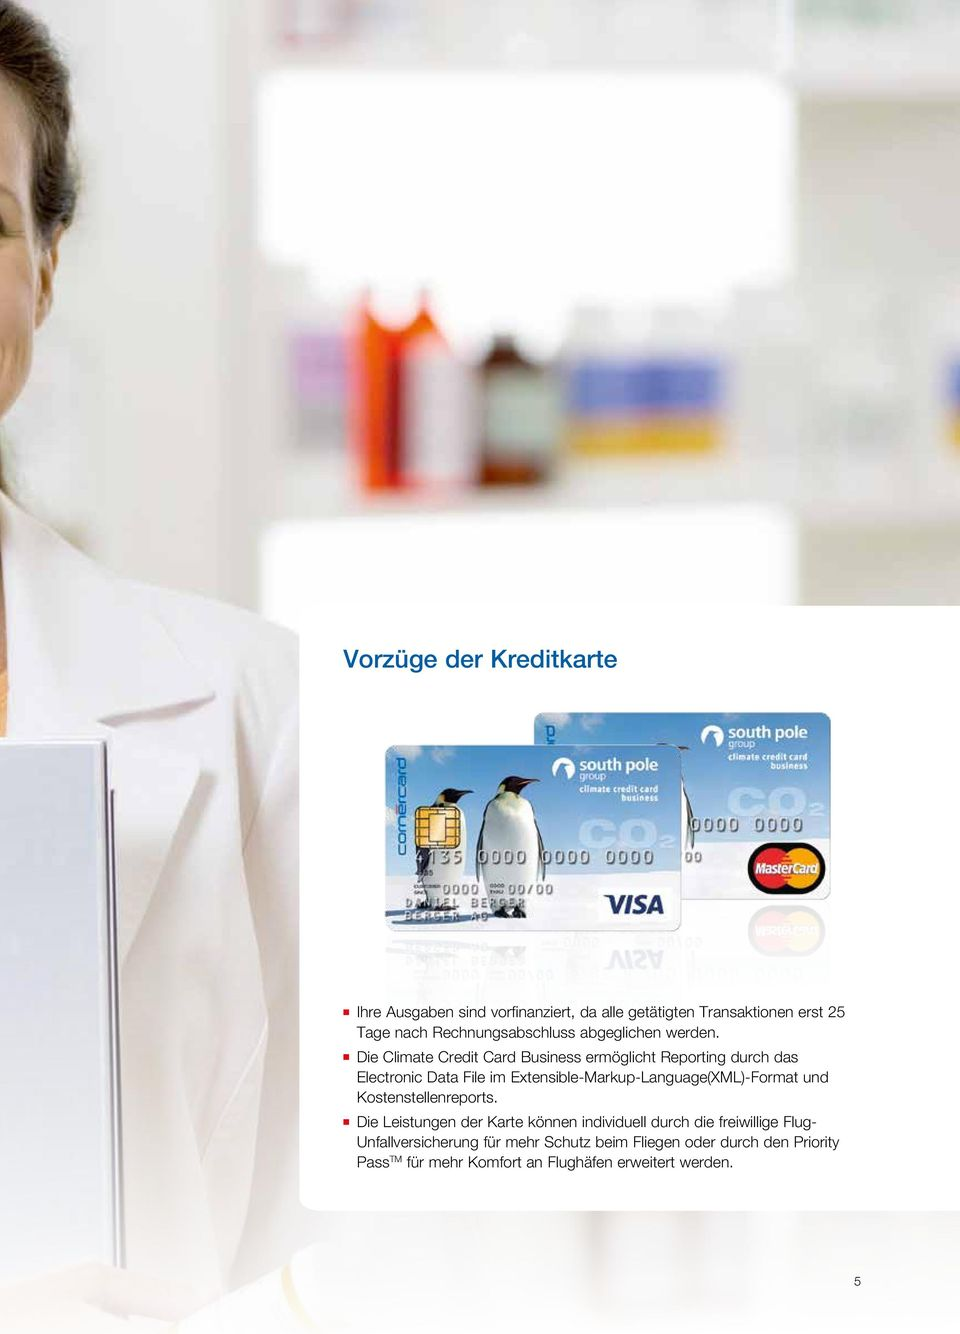 Die Climate Credit Card Business ermöglicht Reporting durch das Electronic Data File im